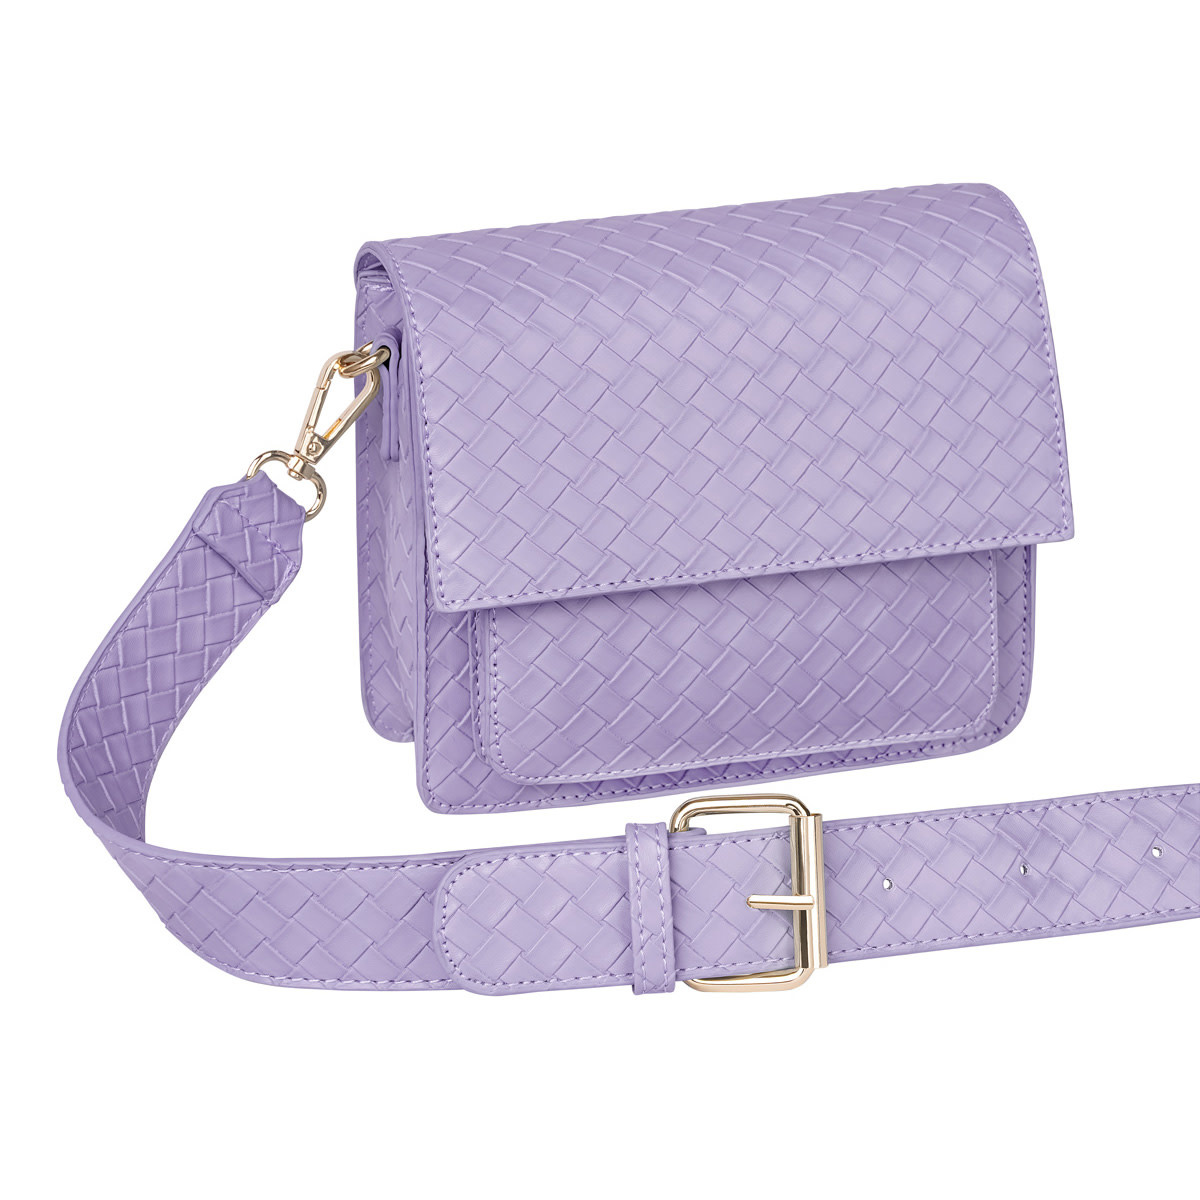 With love Bag braided  Violet 18cm x 15cm